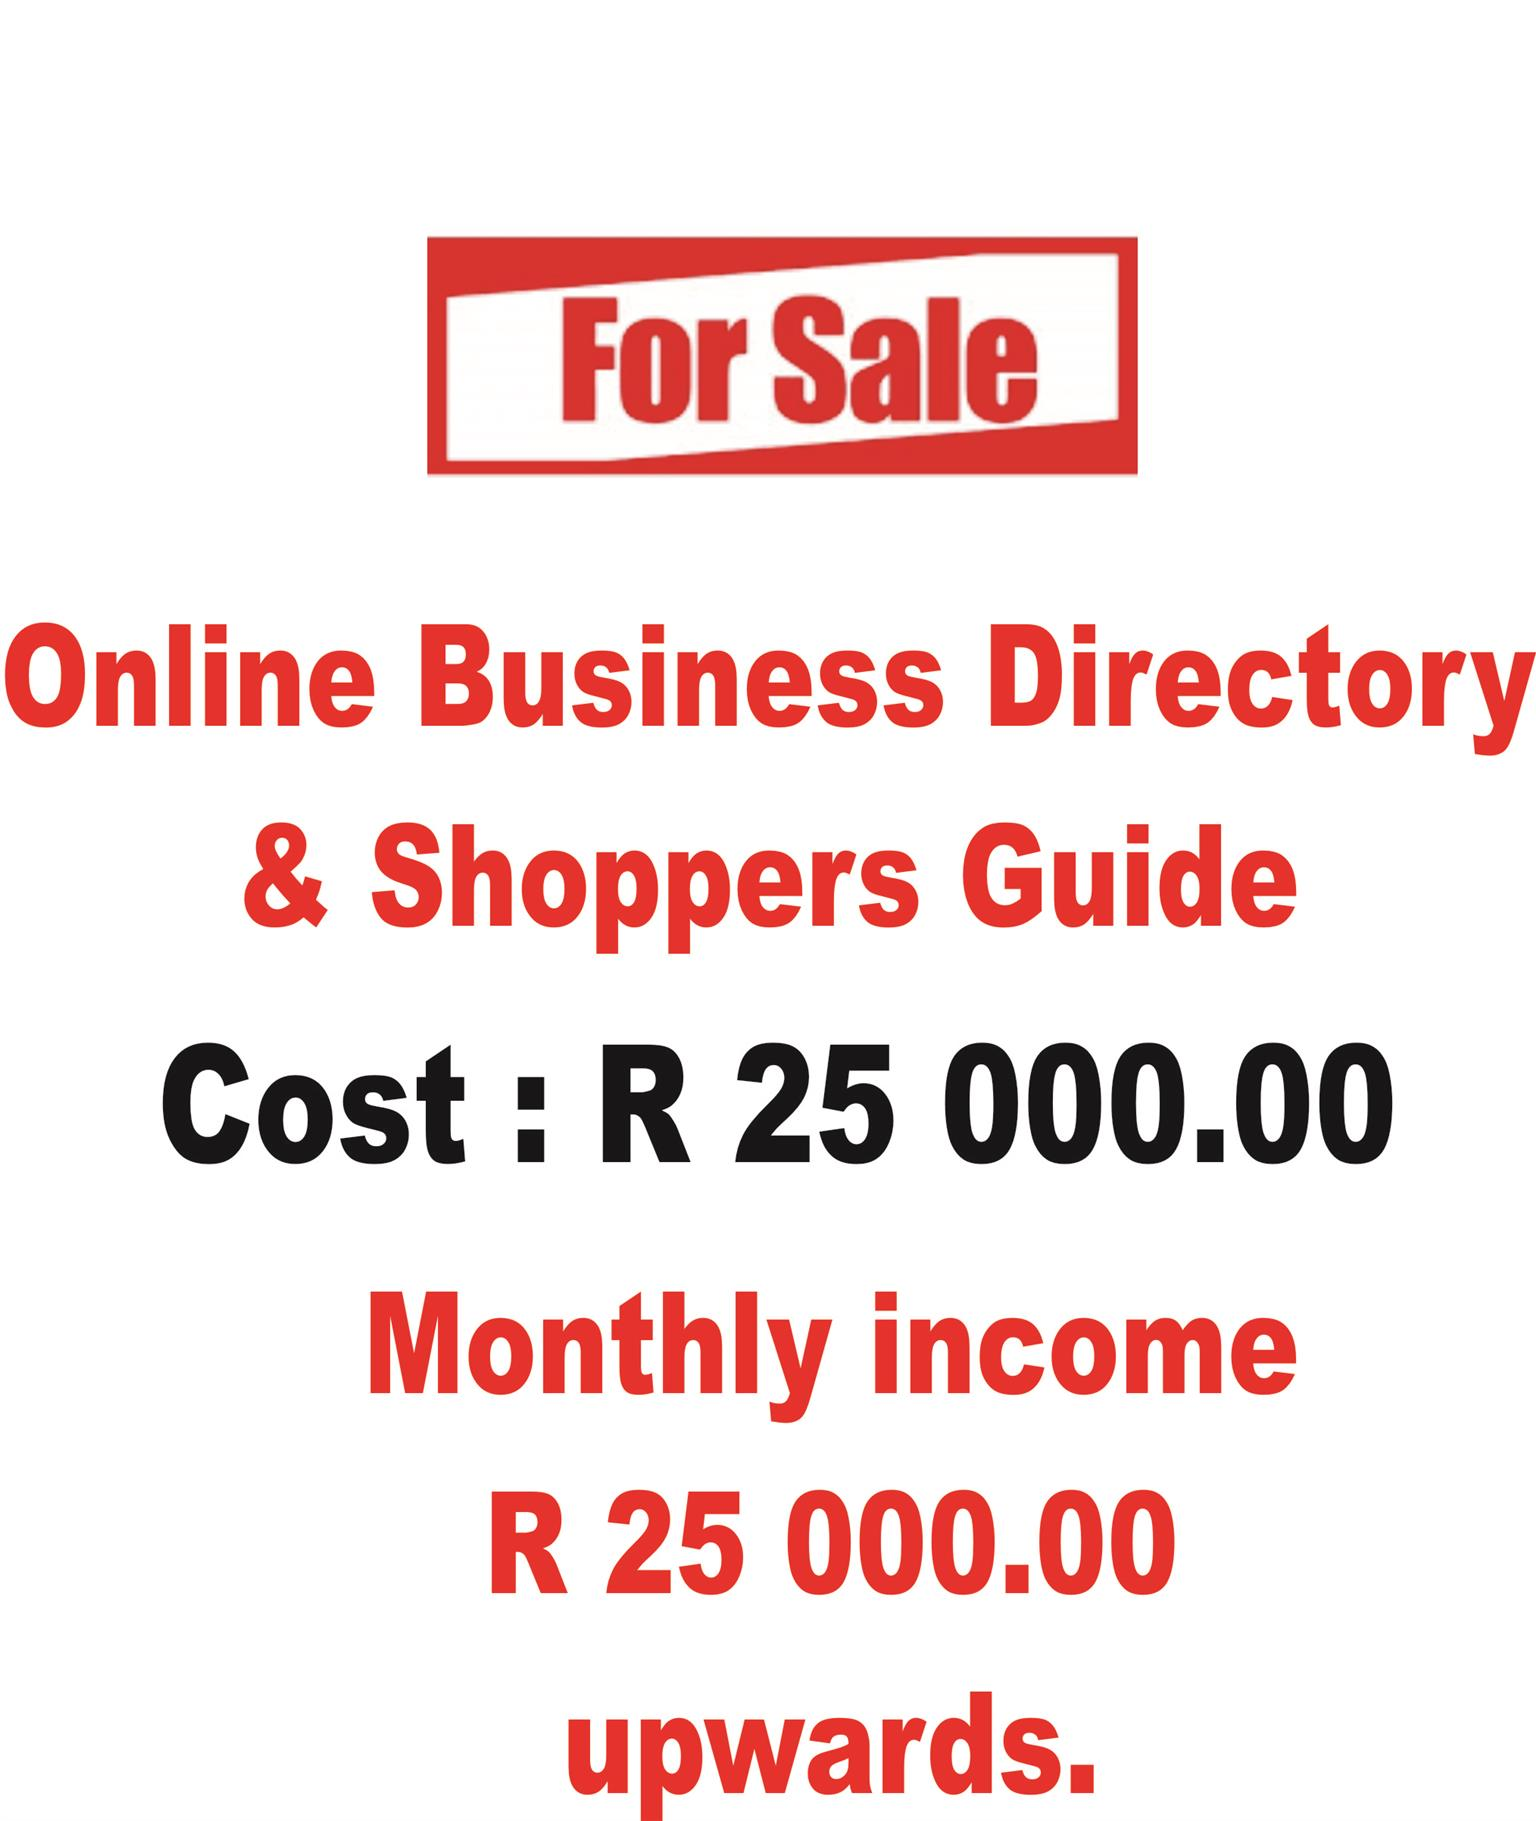 Online Business Directory & Shoppers Guide For Sale : R25000.00 ...